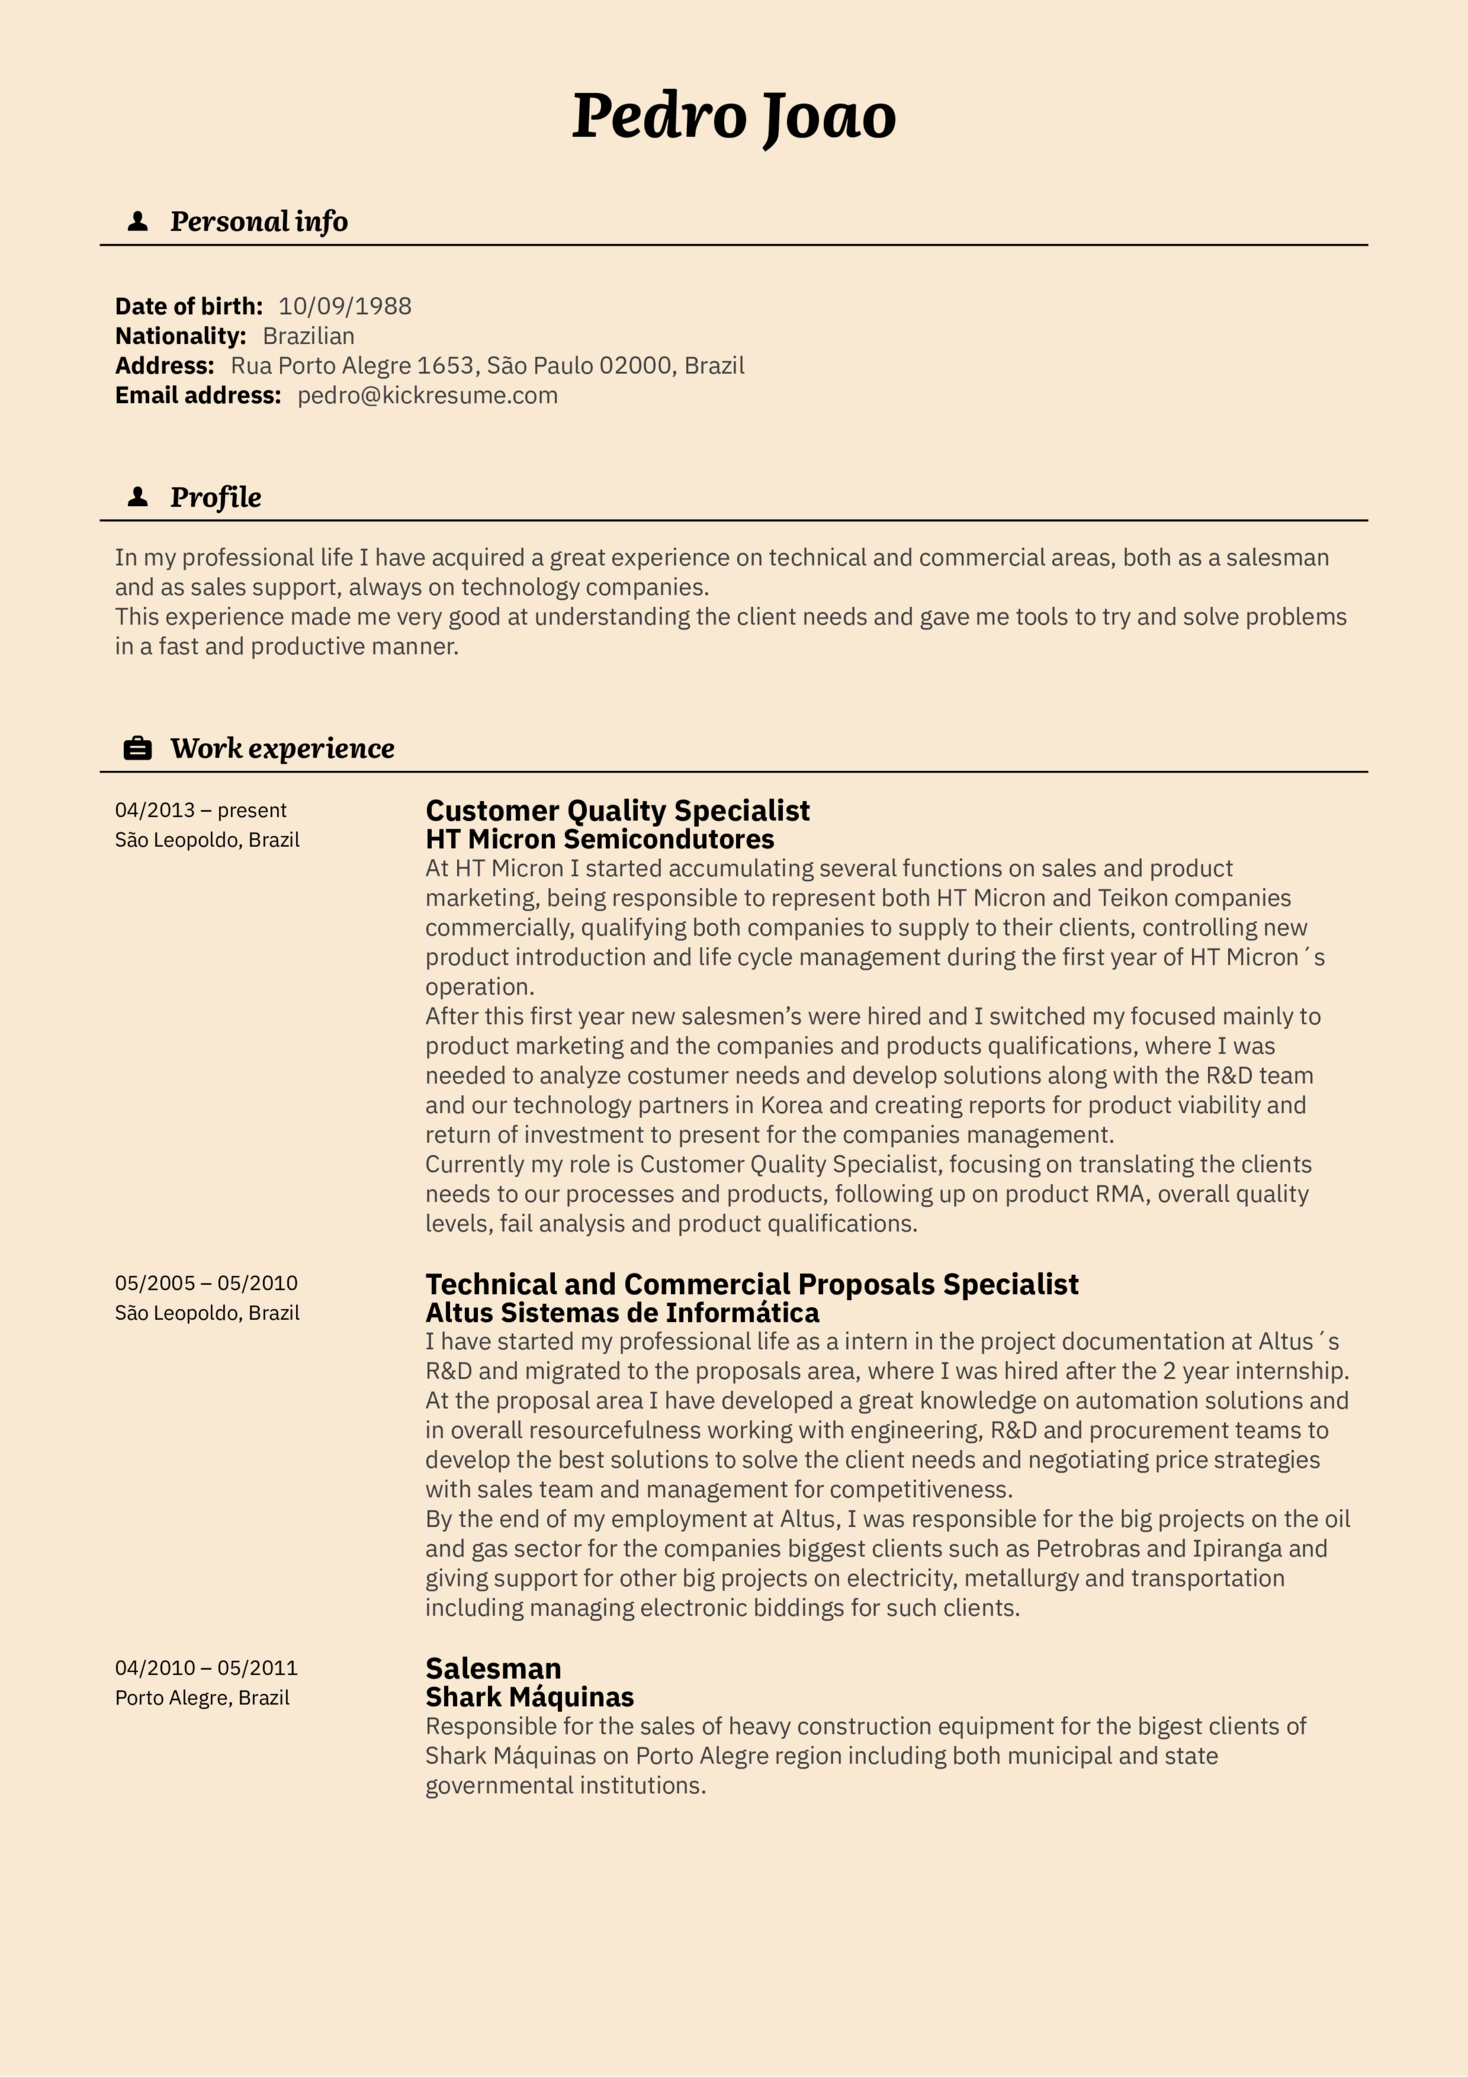 Customer specialist resume example at Vodafone | Resume samples ...